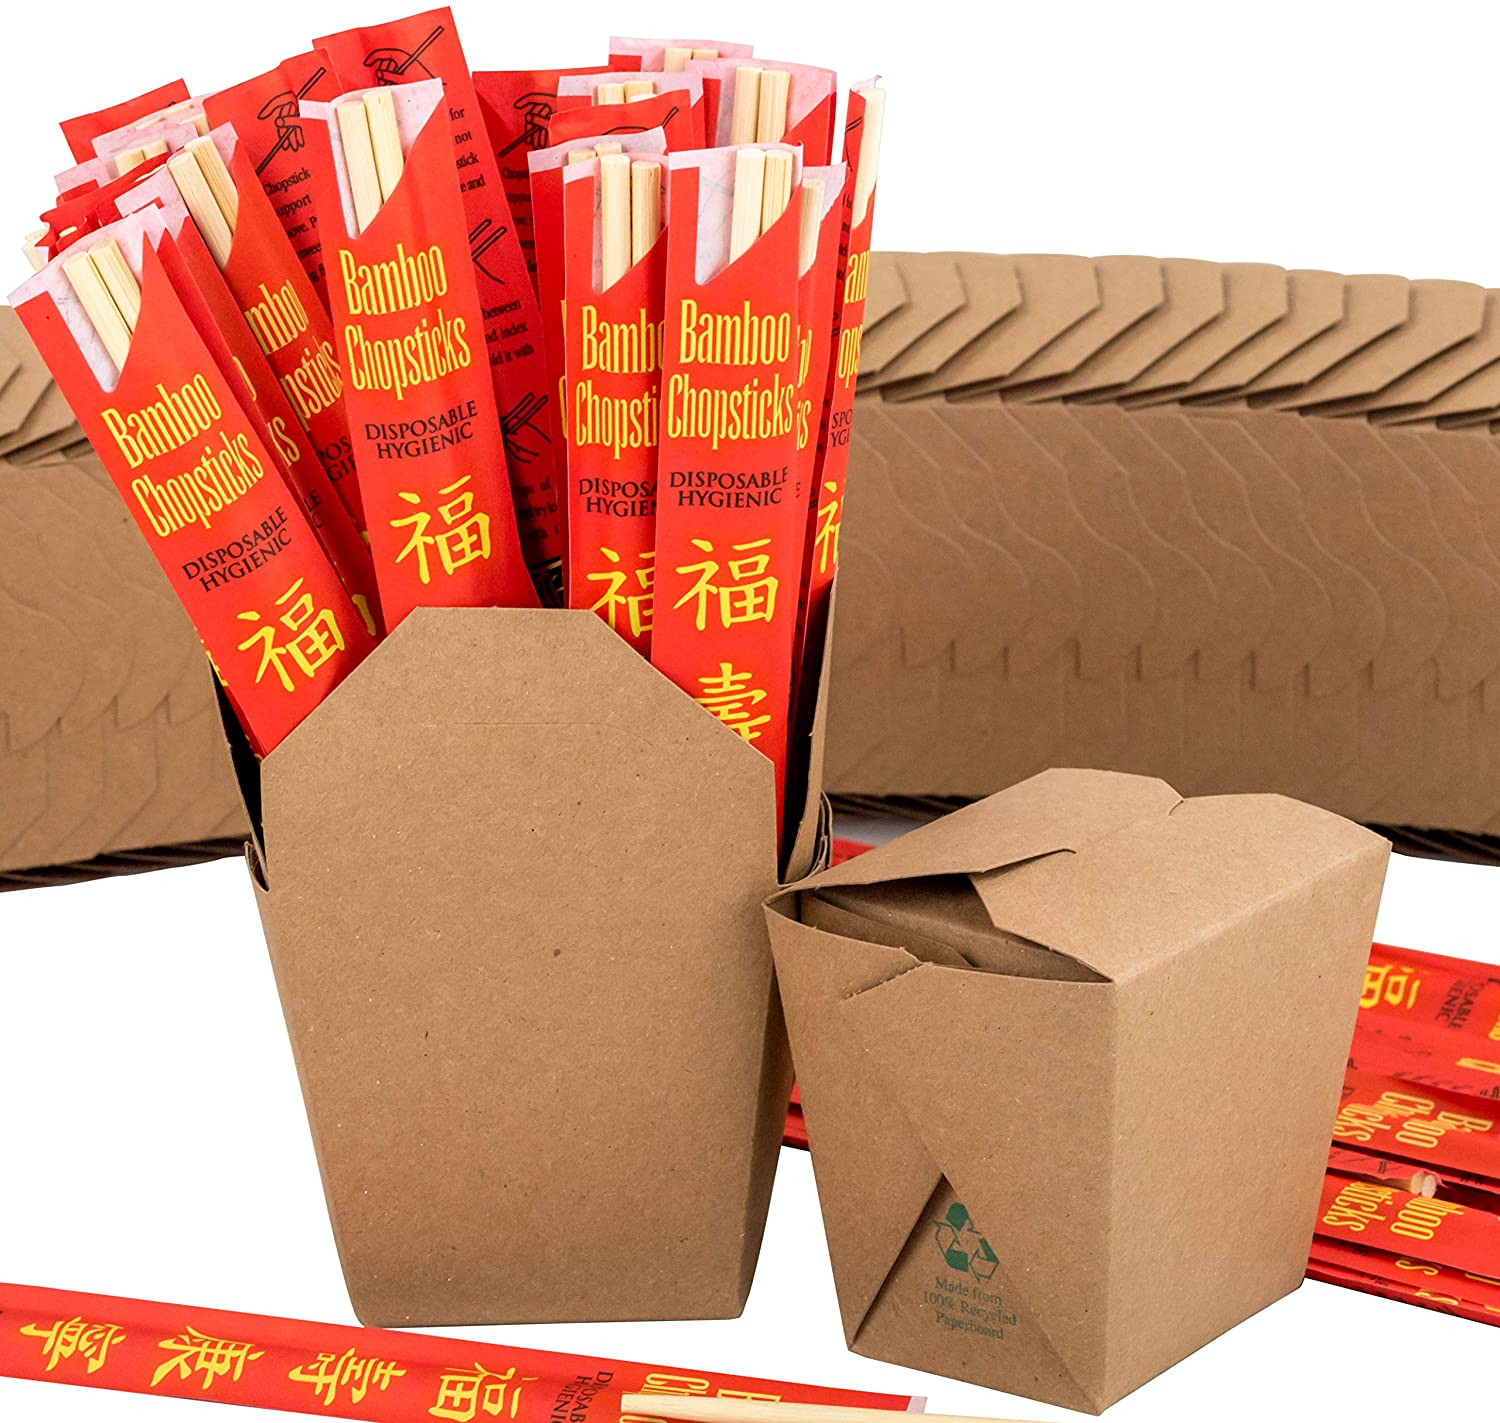 Brown 16 oz Chinese Take Out Box and Premium Bamboo Disposable, Sleeved and Separated Chopstick Set. 25 of Each by Avant Grub. Stackable, Recyclable Leak and Grease Resistant to Go Food Containers